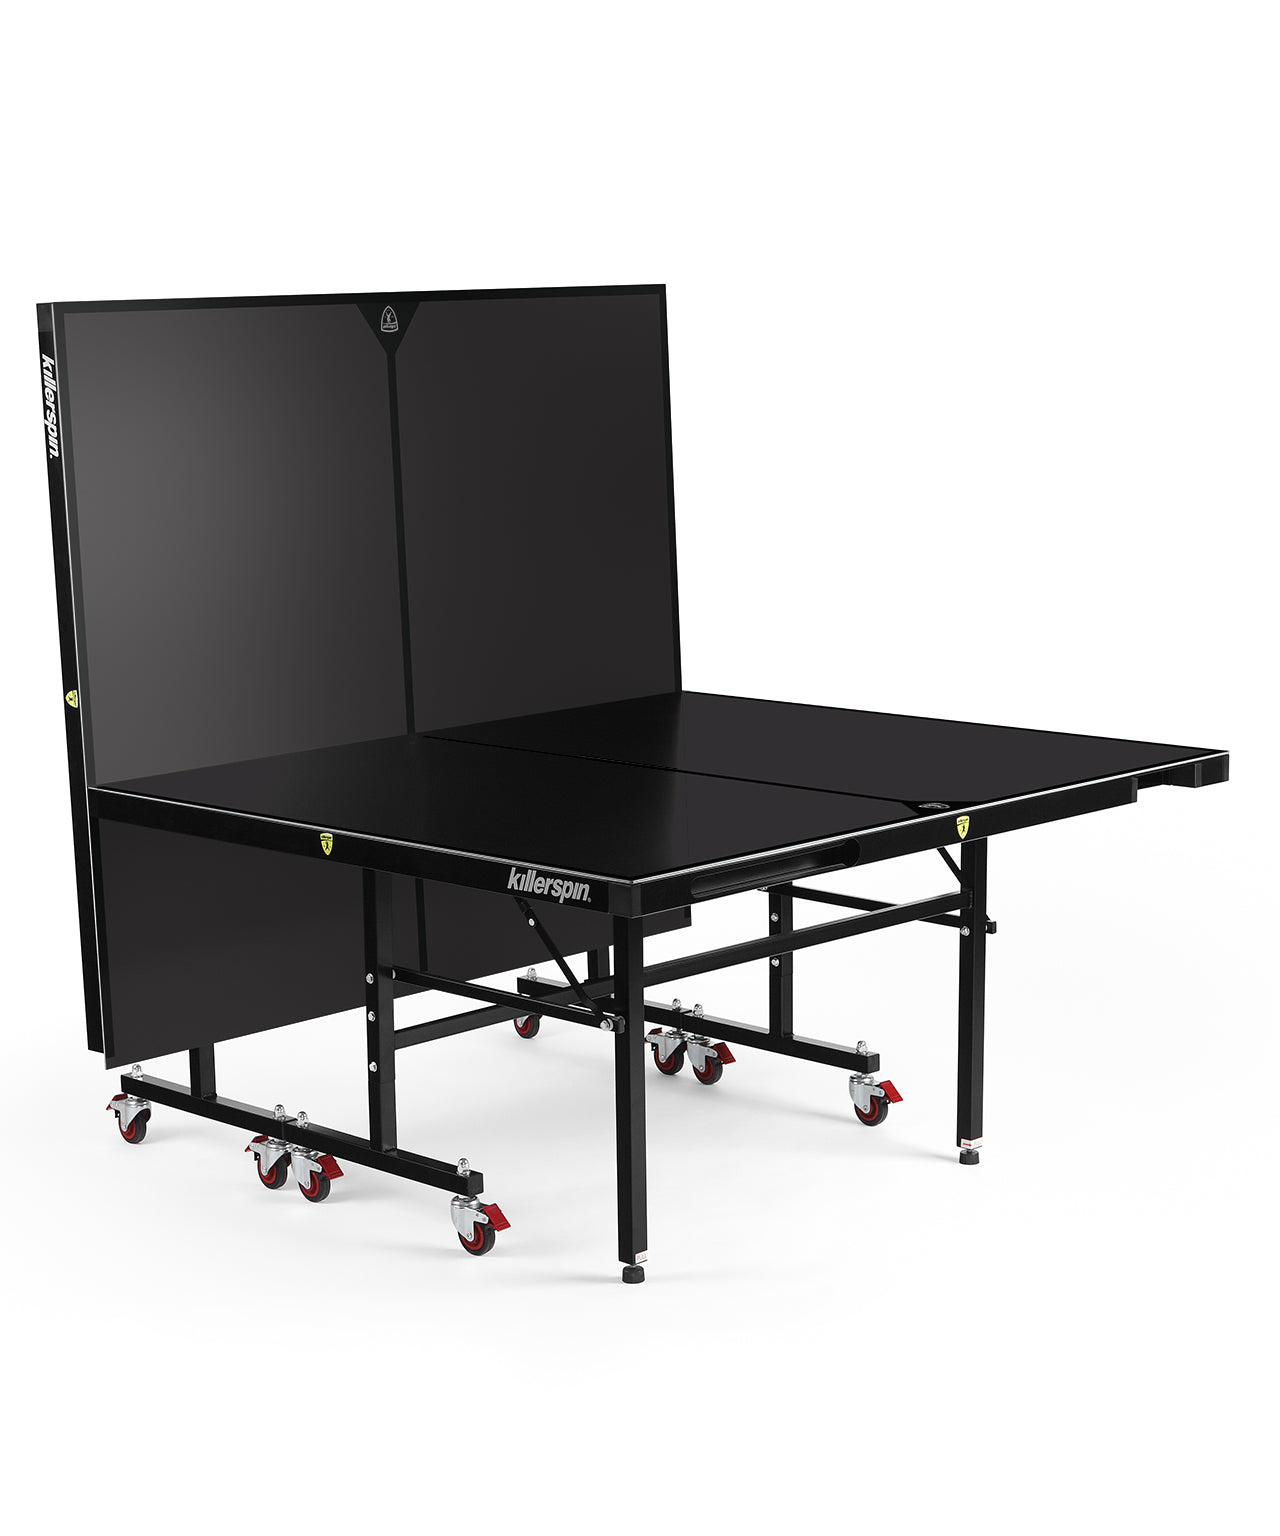 Killerspin Outdoor Ping Pong Table MyT10 BlackStorm - Playback position